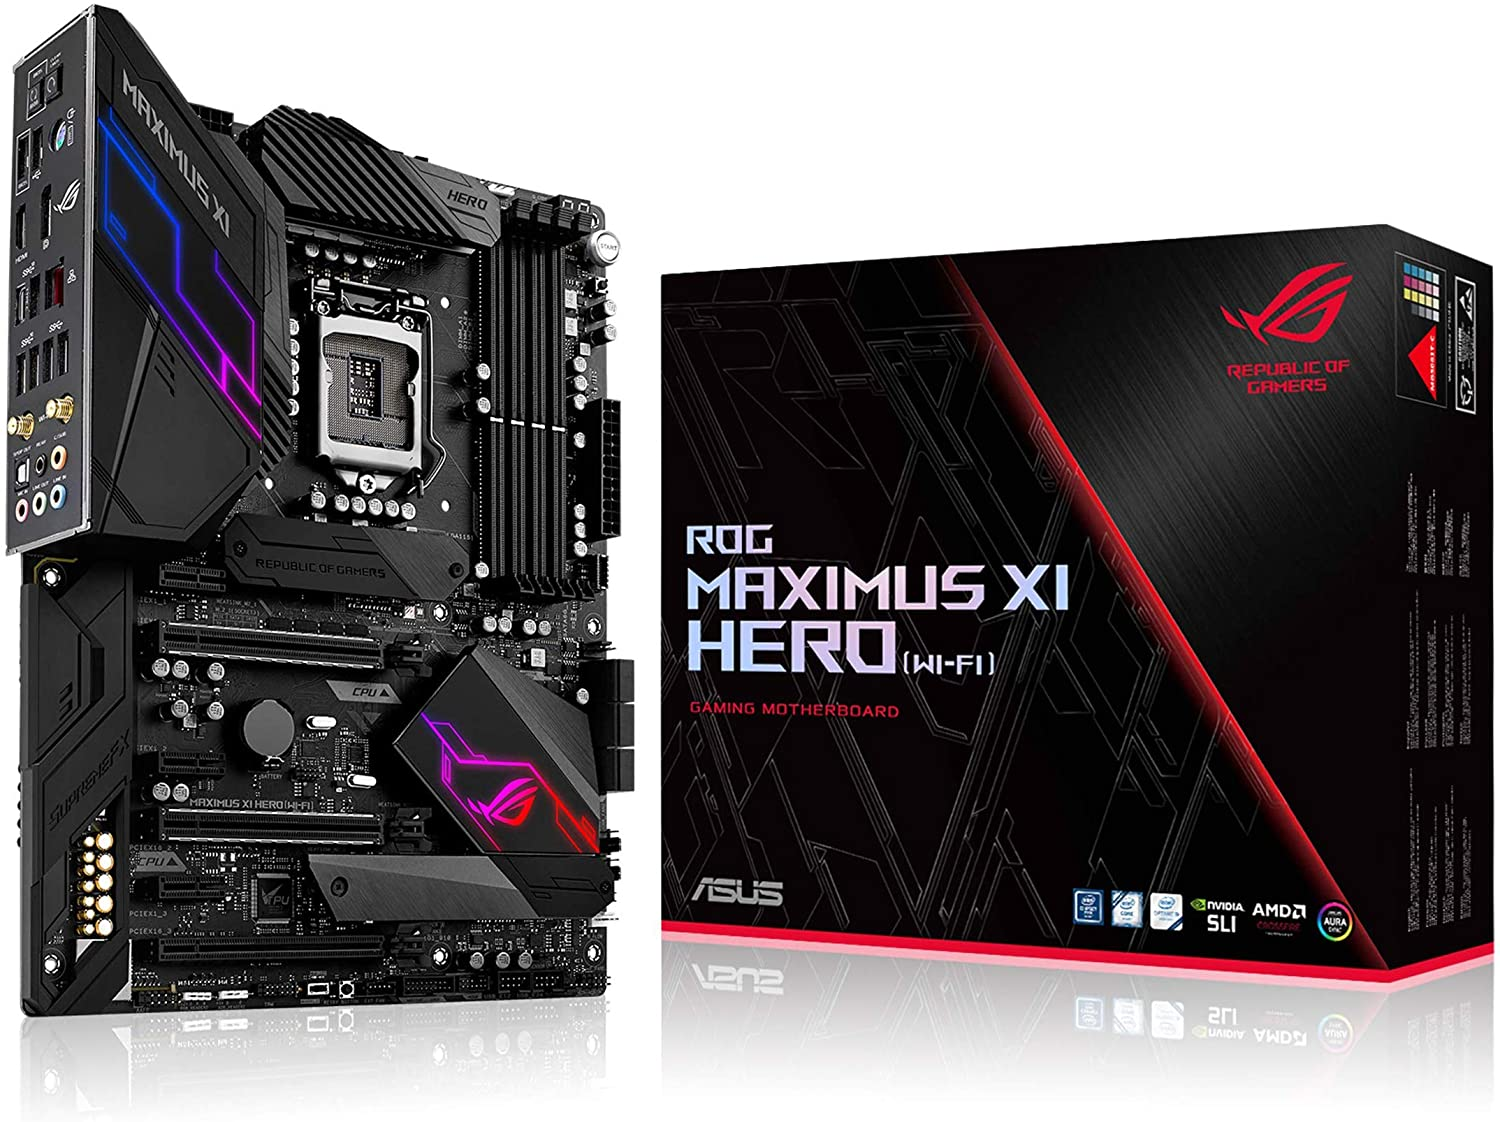 Amazon Com Asus Rog Maximus Xi Hero Wi Fi Z390 Gaming Motherboard Lga1151 Intel 8th 9th Gen Atx Ddr4 Dp Hdmi M 2 Usb 3 1 Gen2 802 11ac Wi Fi Computers Accessories